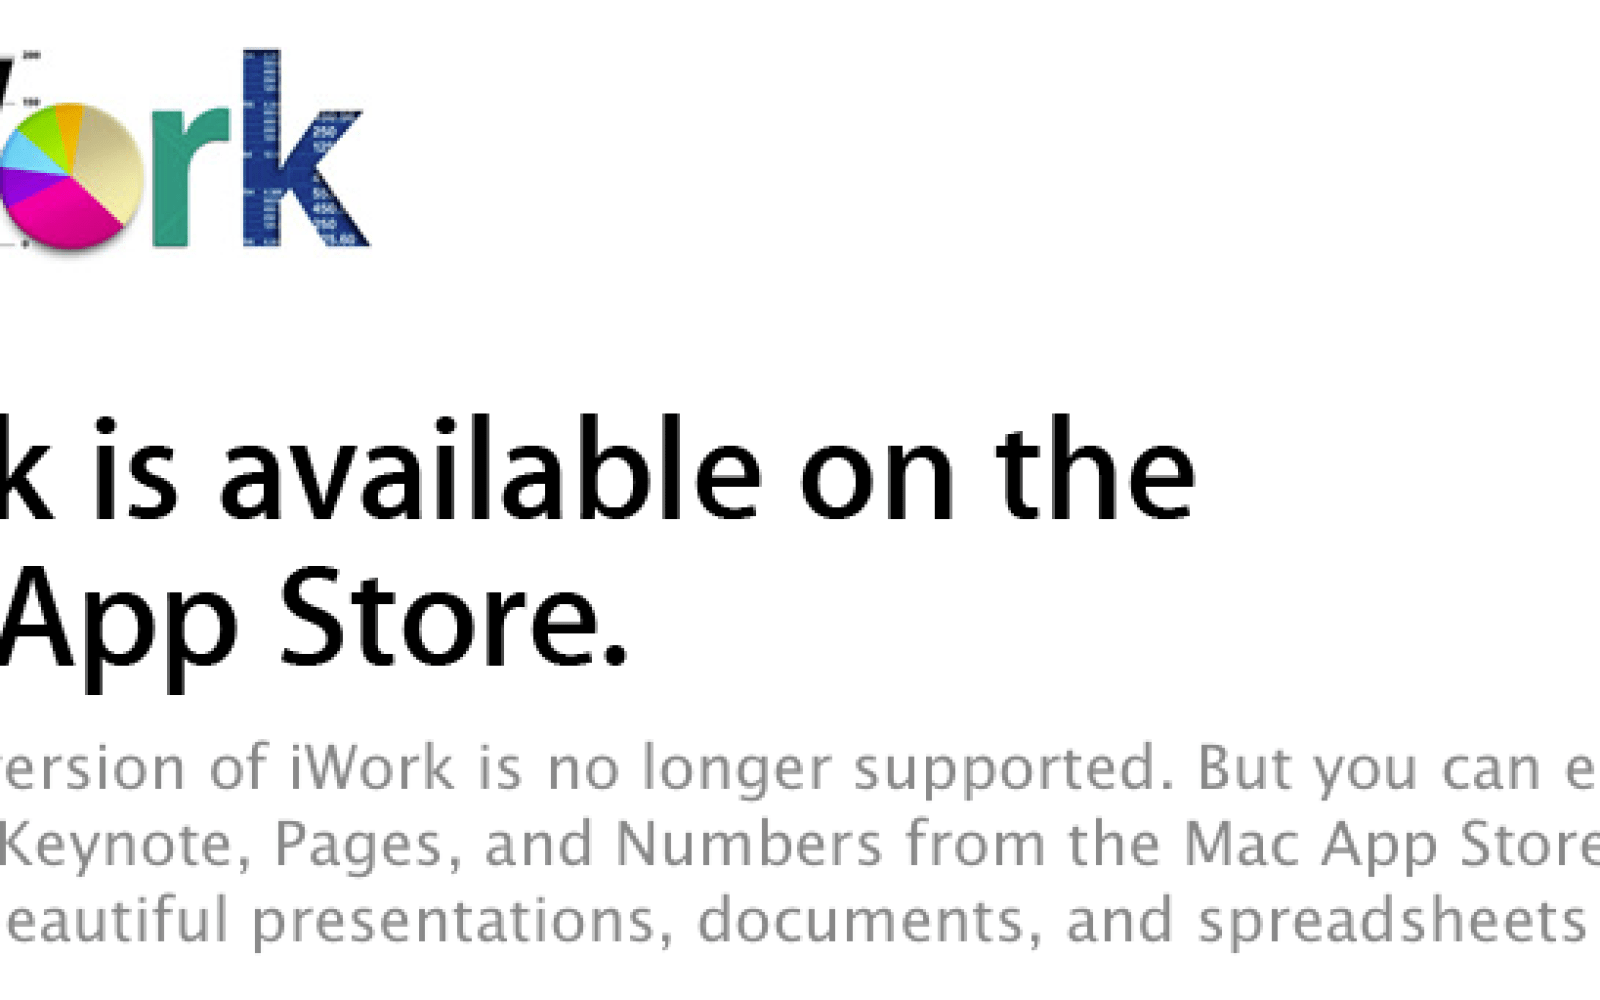 Mac App Store bug allows iWork trial users to update the entire